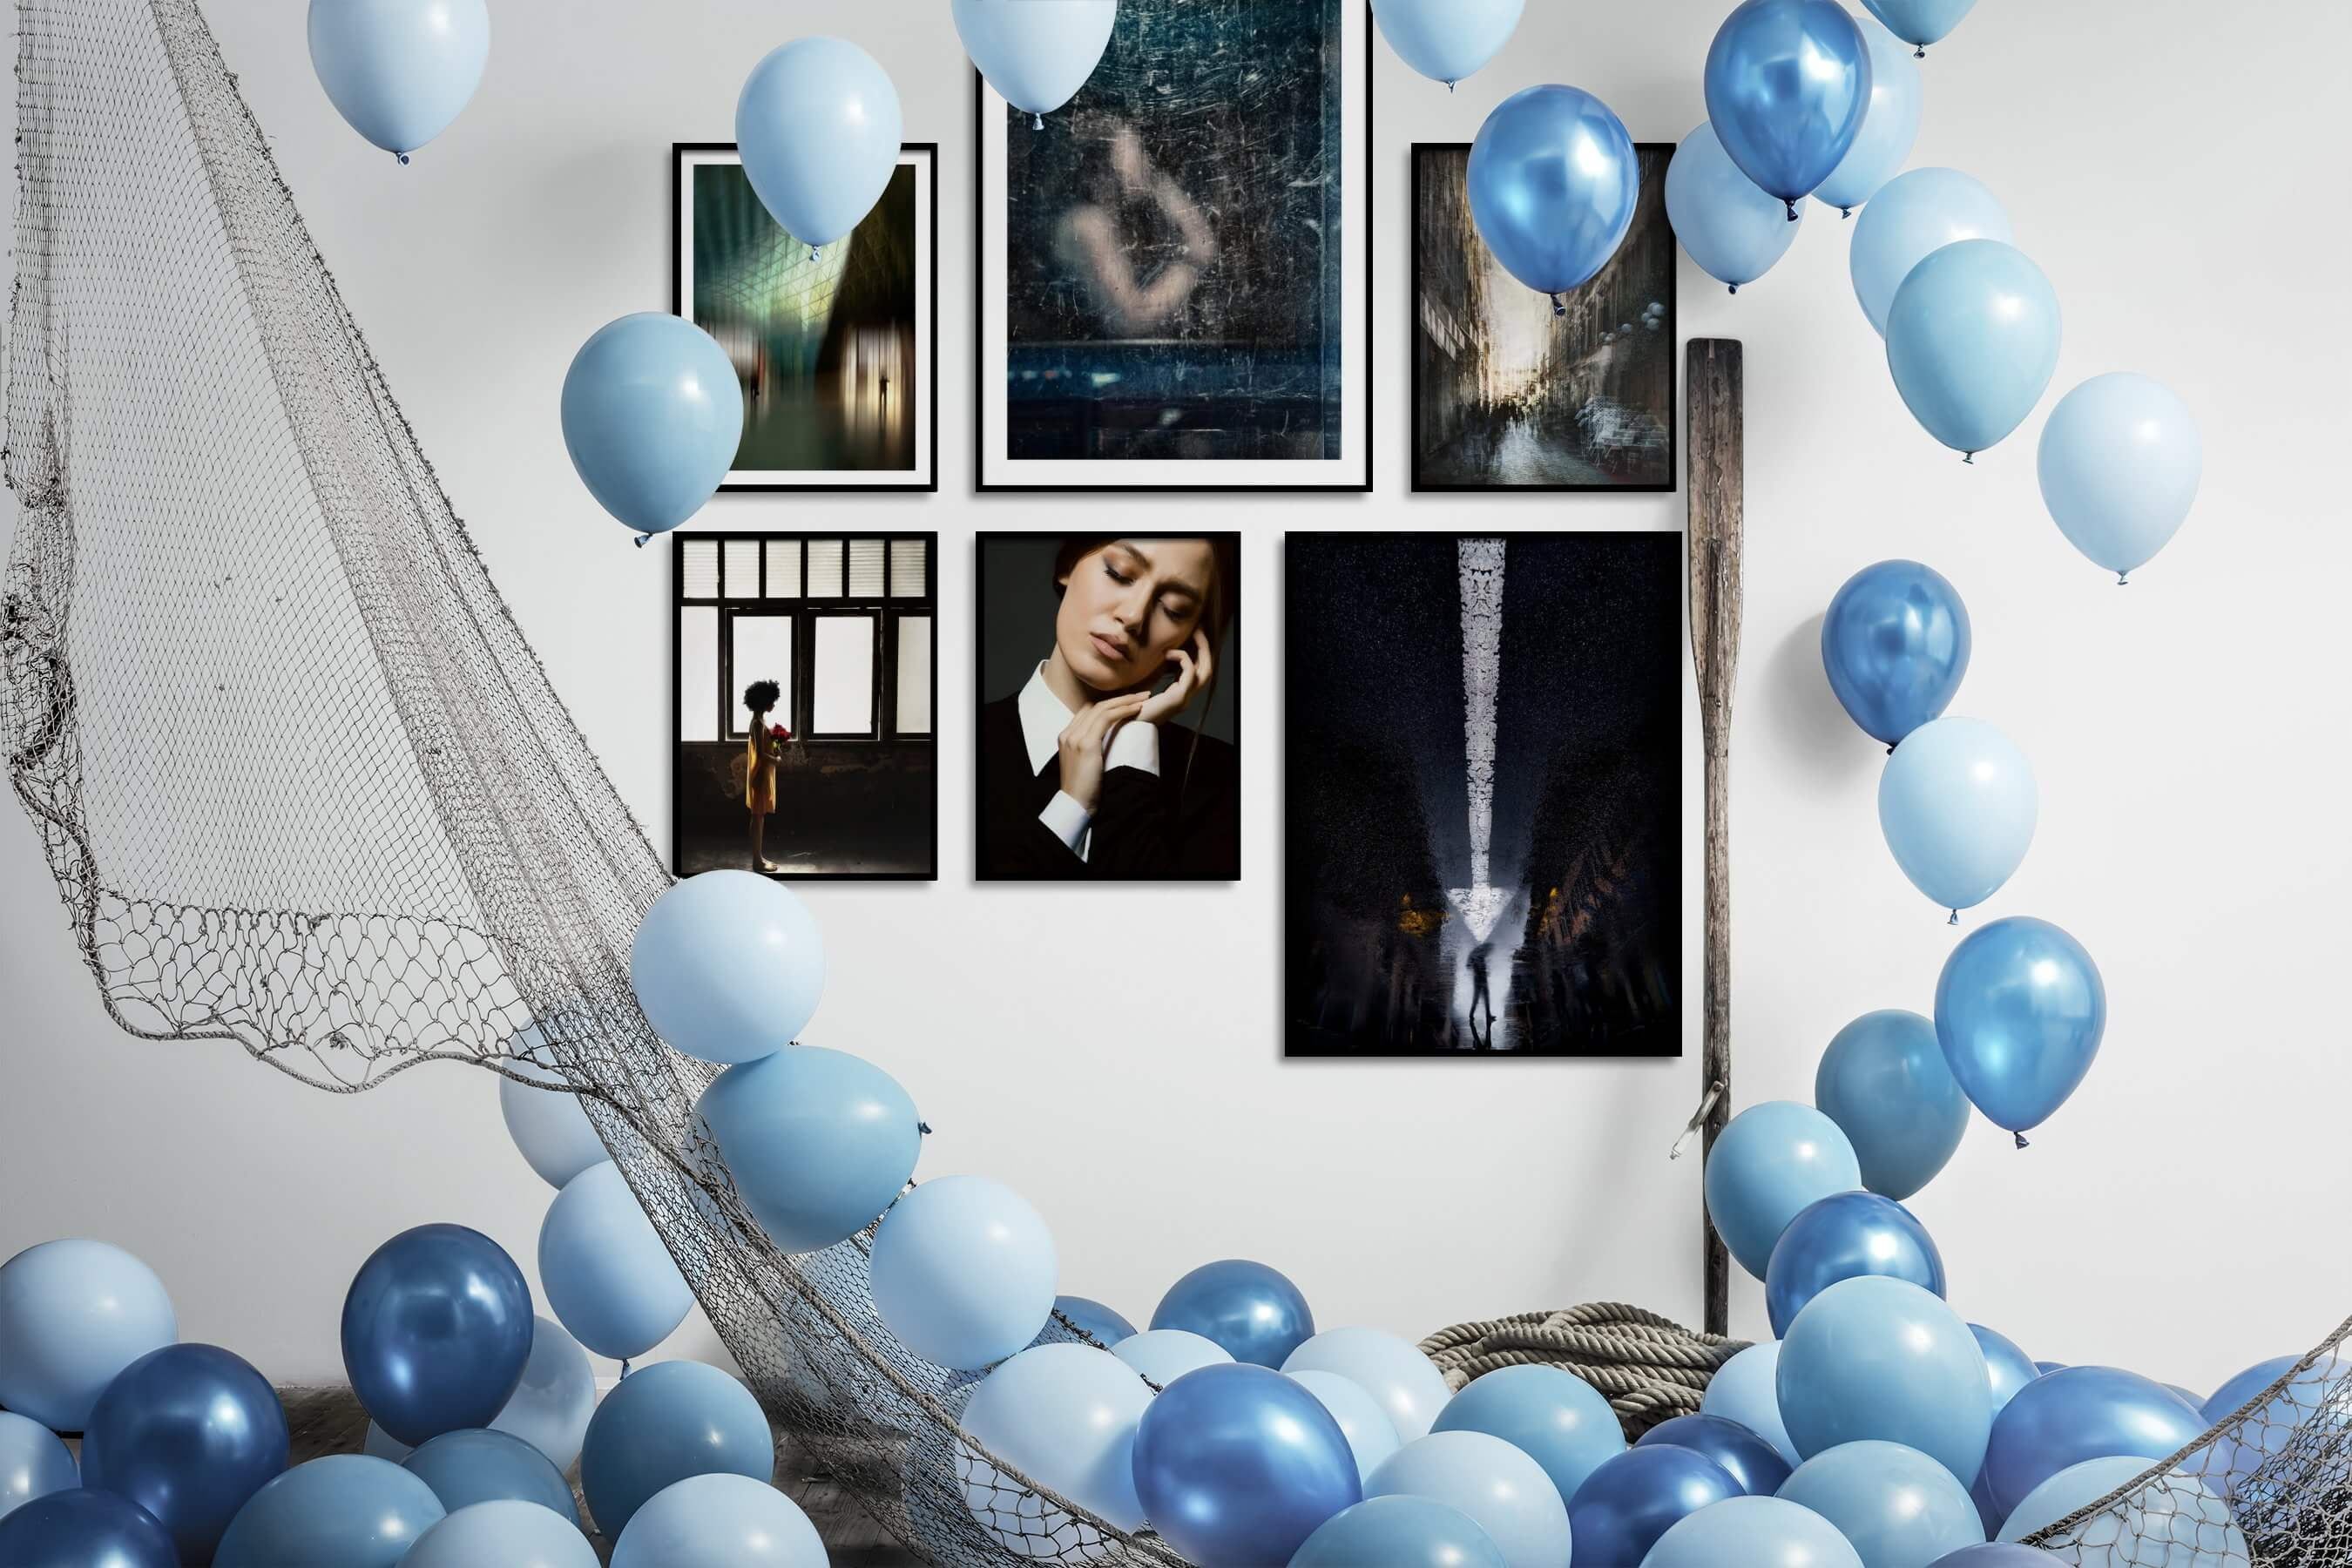 Gallery wall idea with six framed pictures arranged on a wall depicting For the Maximalist, City Life, Artsy, Fashion & Beauty, Dark Tones, and For the Minimalist